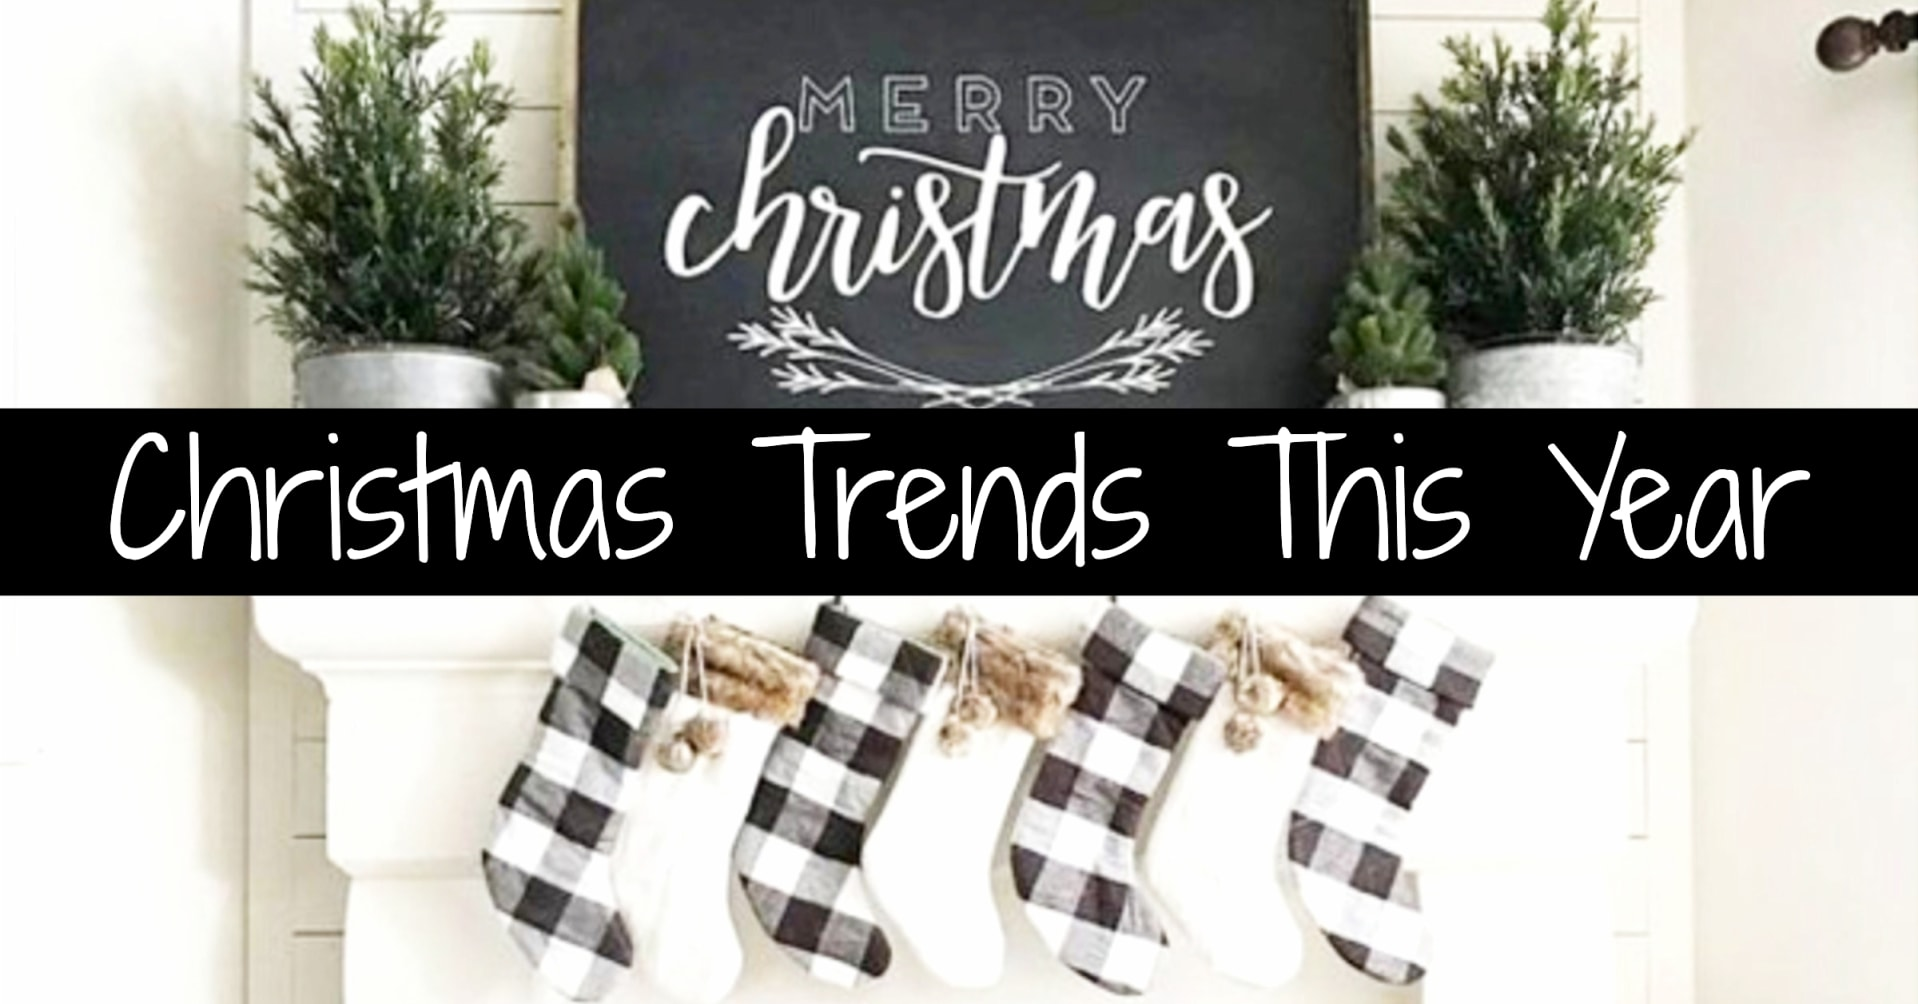 Christmas trends this year - holiday decor trends, Christmas tree trends, color schemes, Holiday themes and Christmas tree ideas for this year